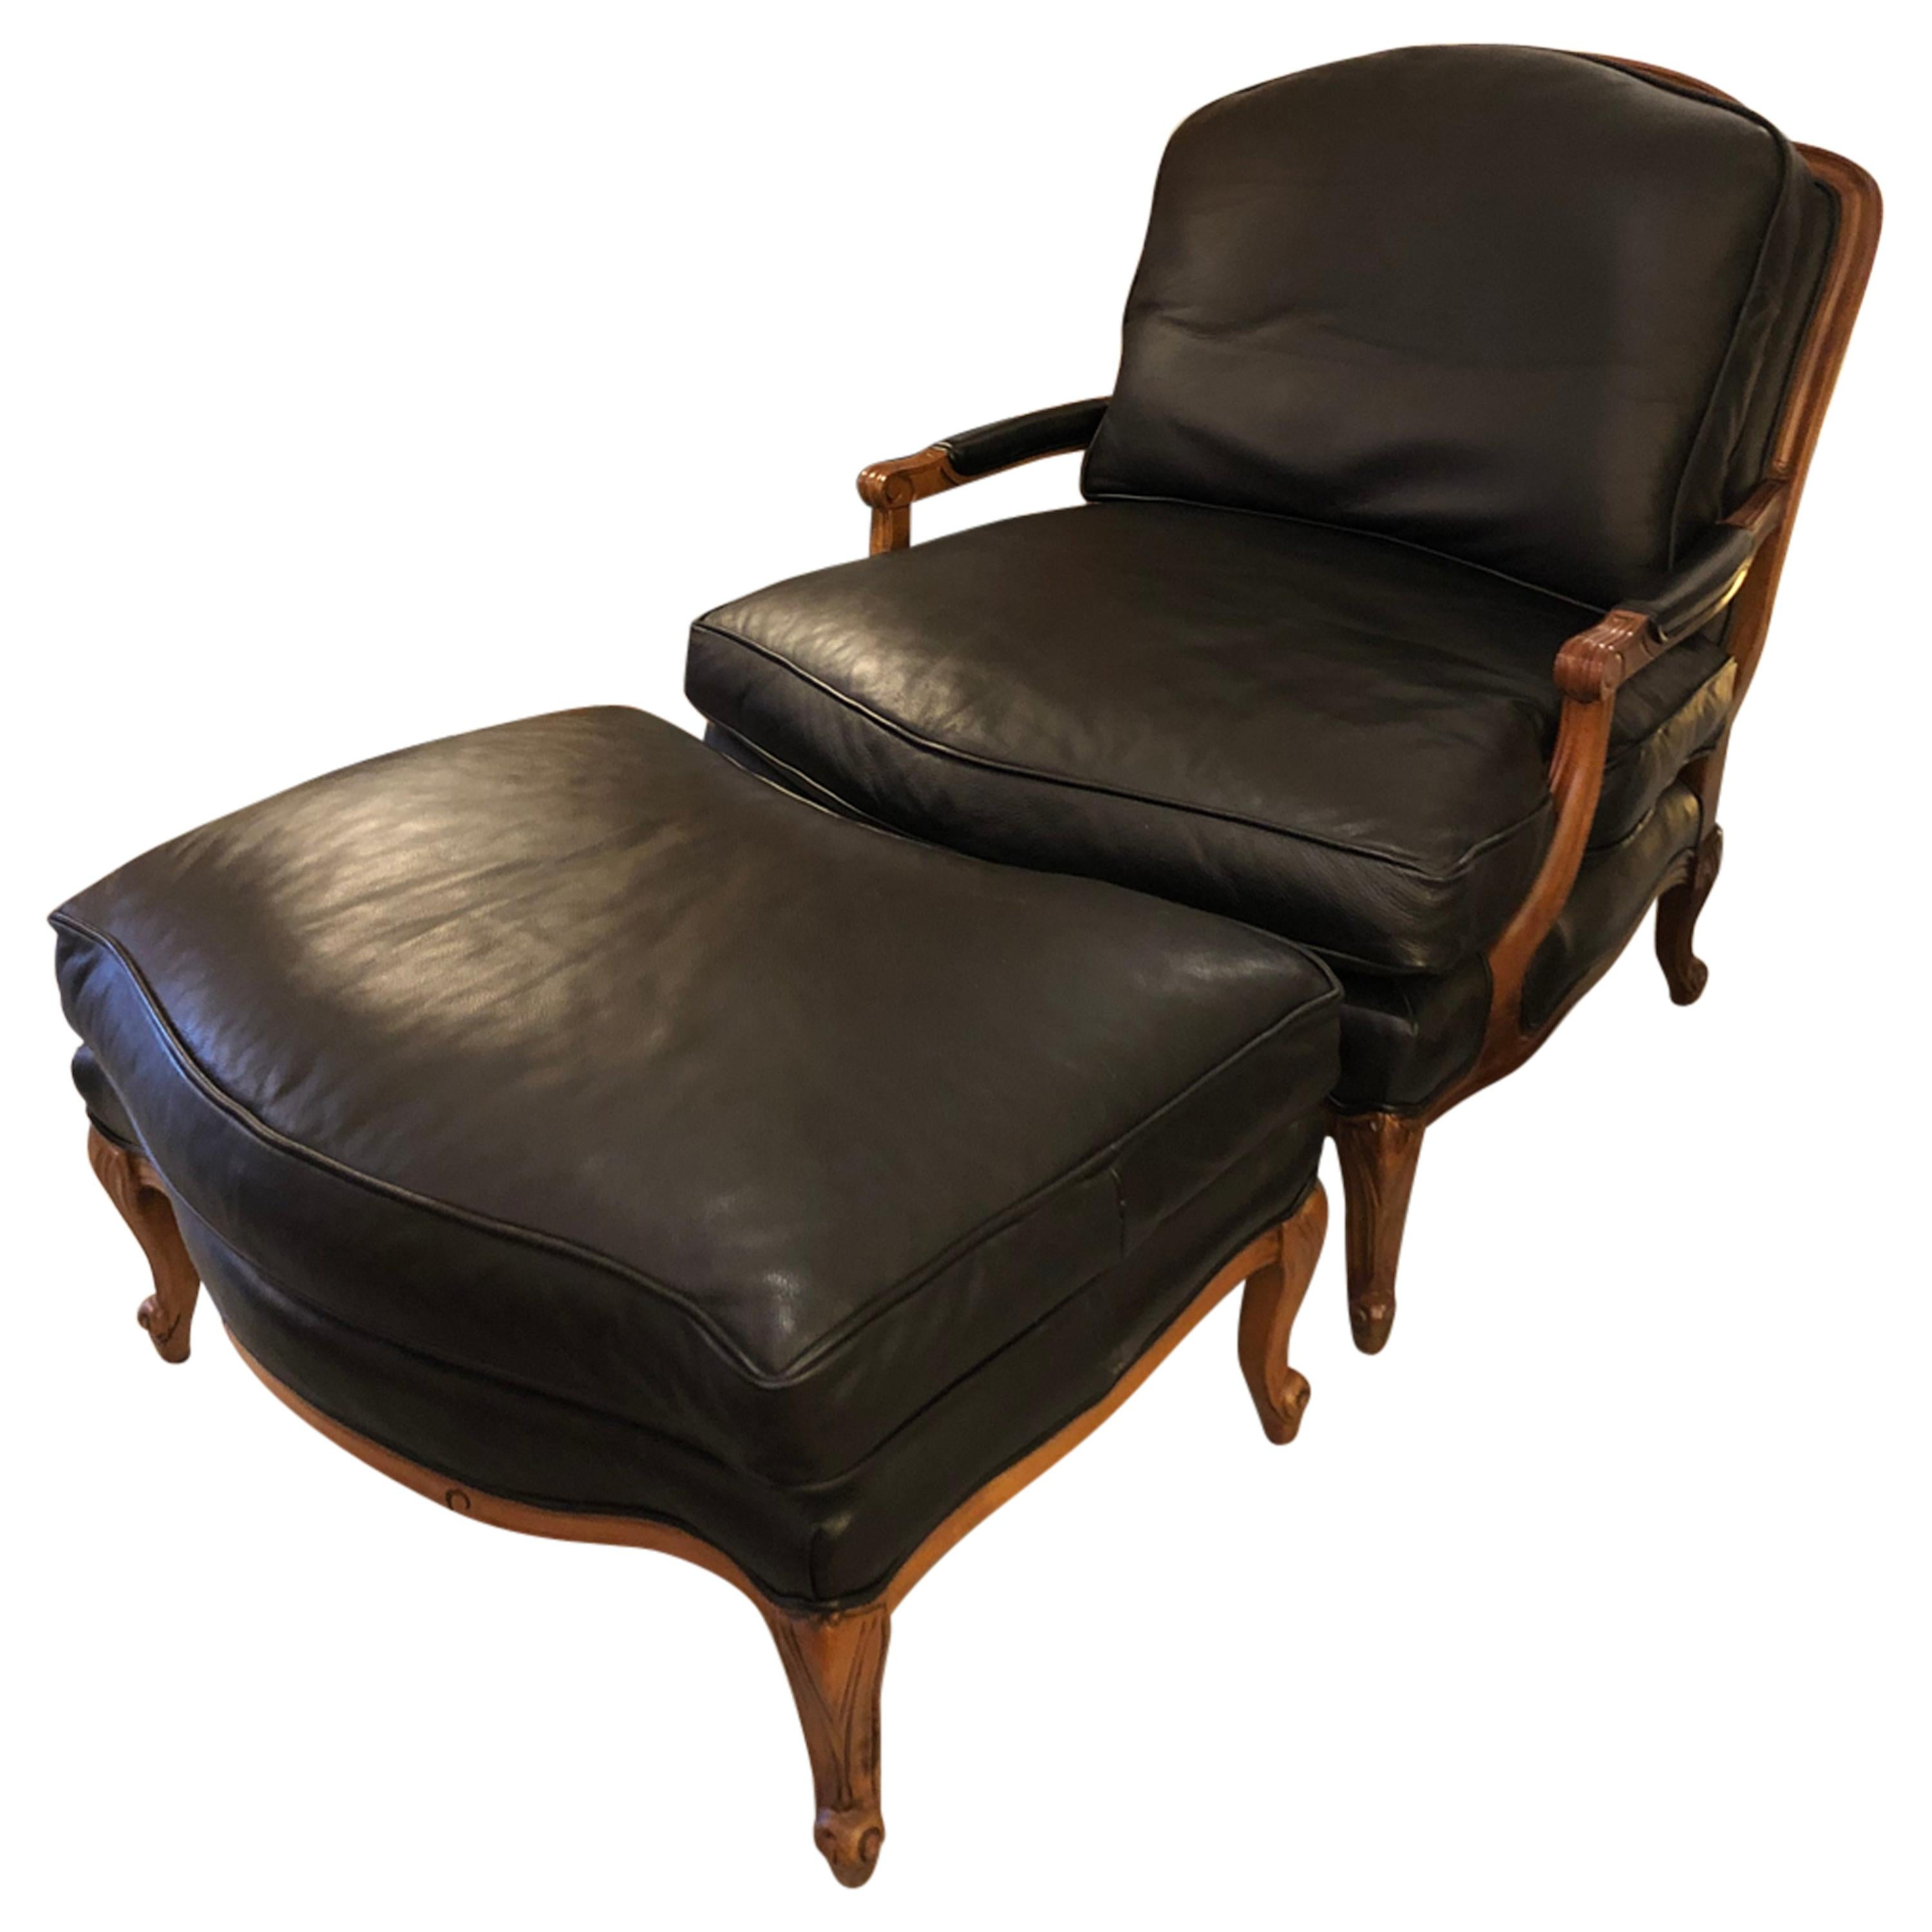 Woodward & Lothrop Top of the Line Black Leather and Walnut Club Chair & Ottoman